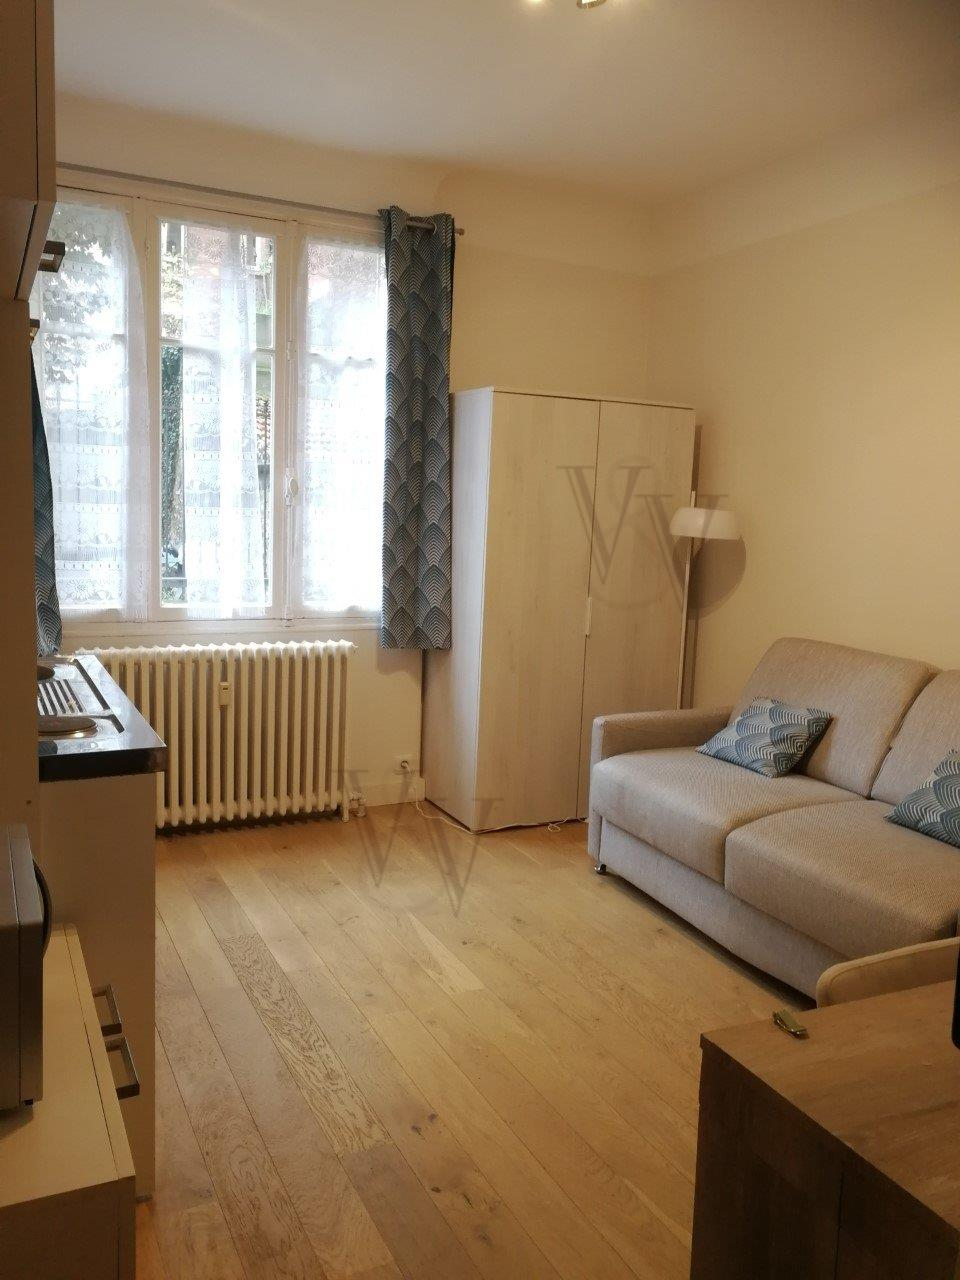 Photo 2 Location Appartement  vincennes